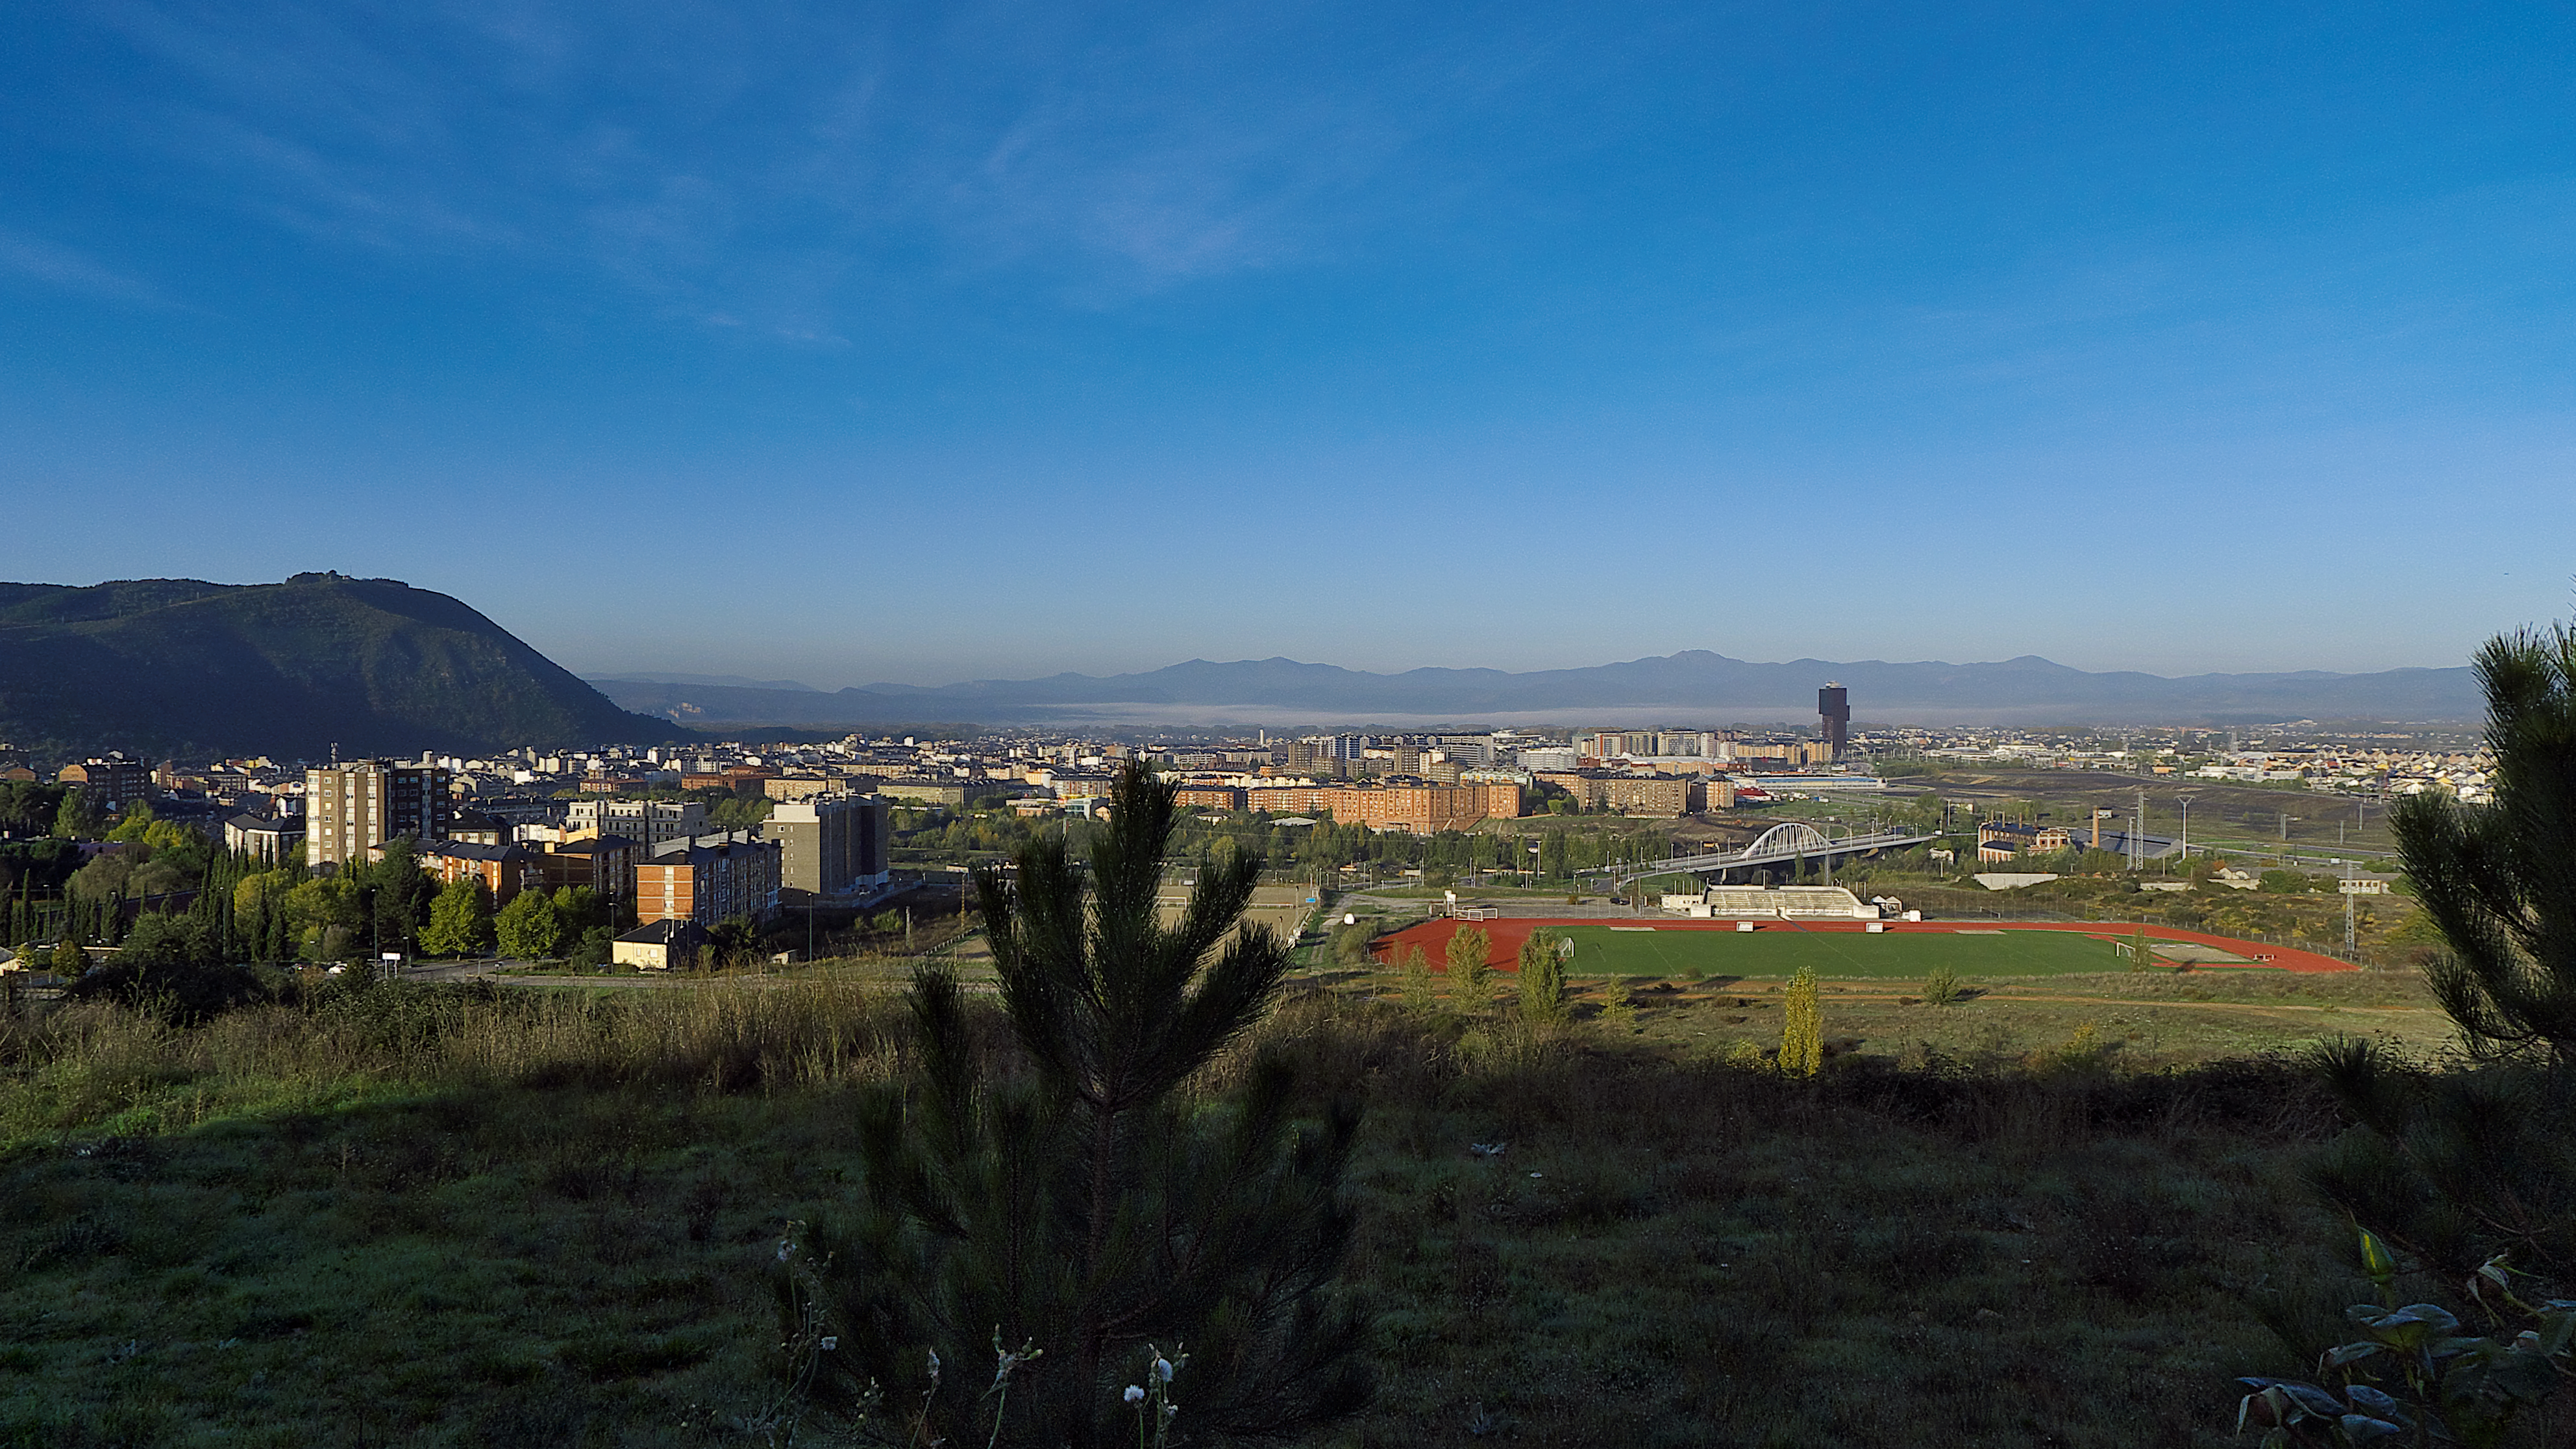 Panoramic view of Ponferrada